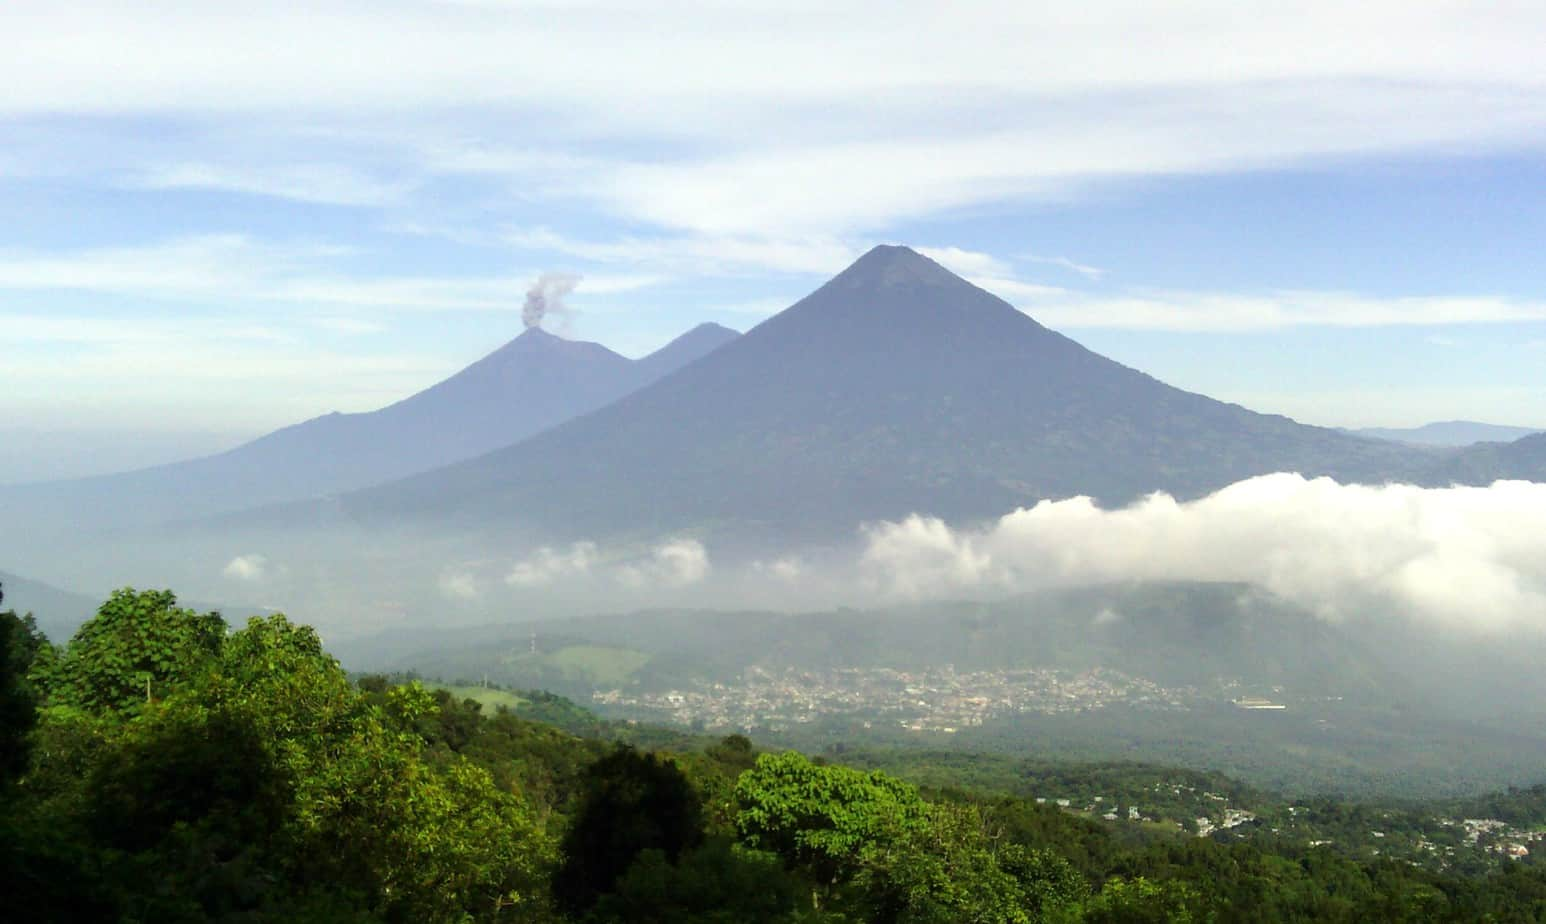 How to Get Paid $3,000 to Climb a Volcano